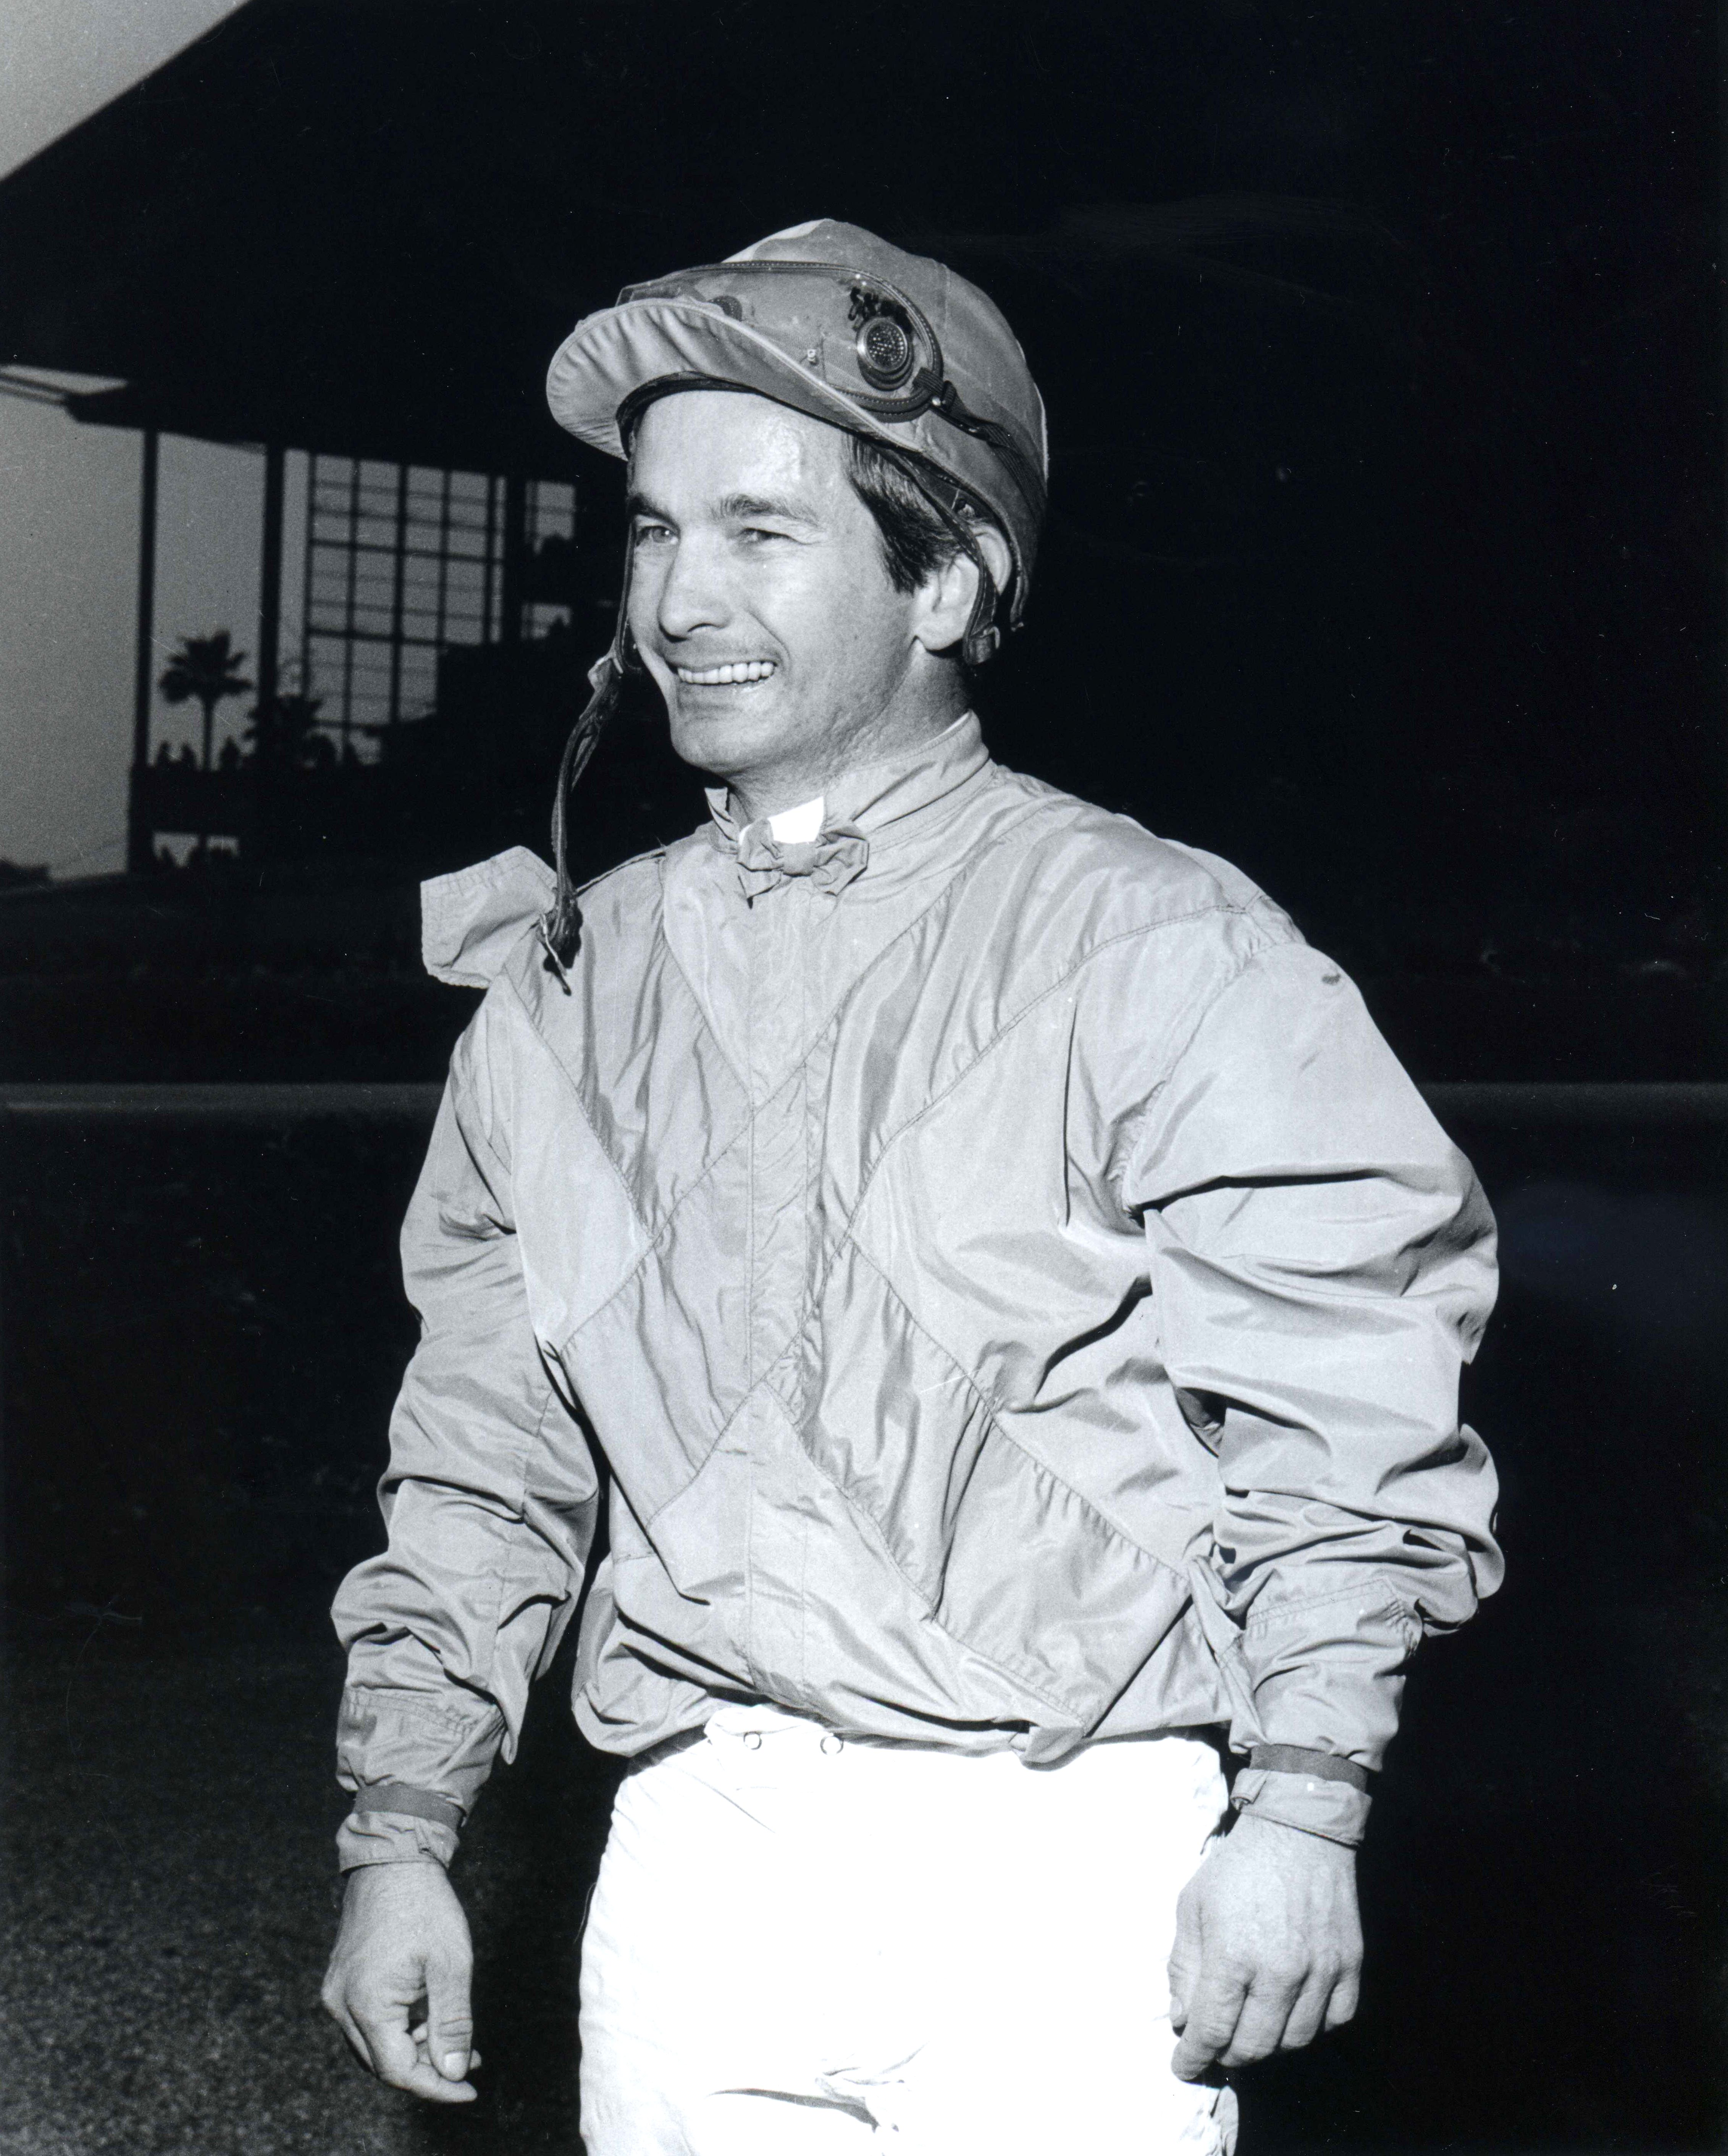 Bill Shoemaker after winning on Princess Endeavor on Febuary 11, 1969 at Santa Anita (Bill Mochon/Museum Collection)